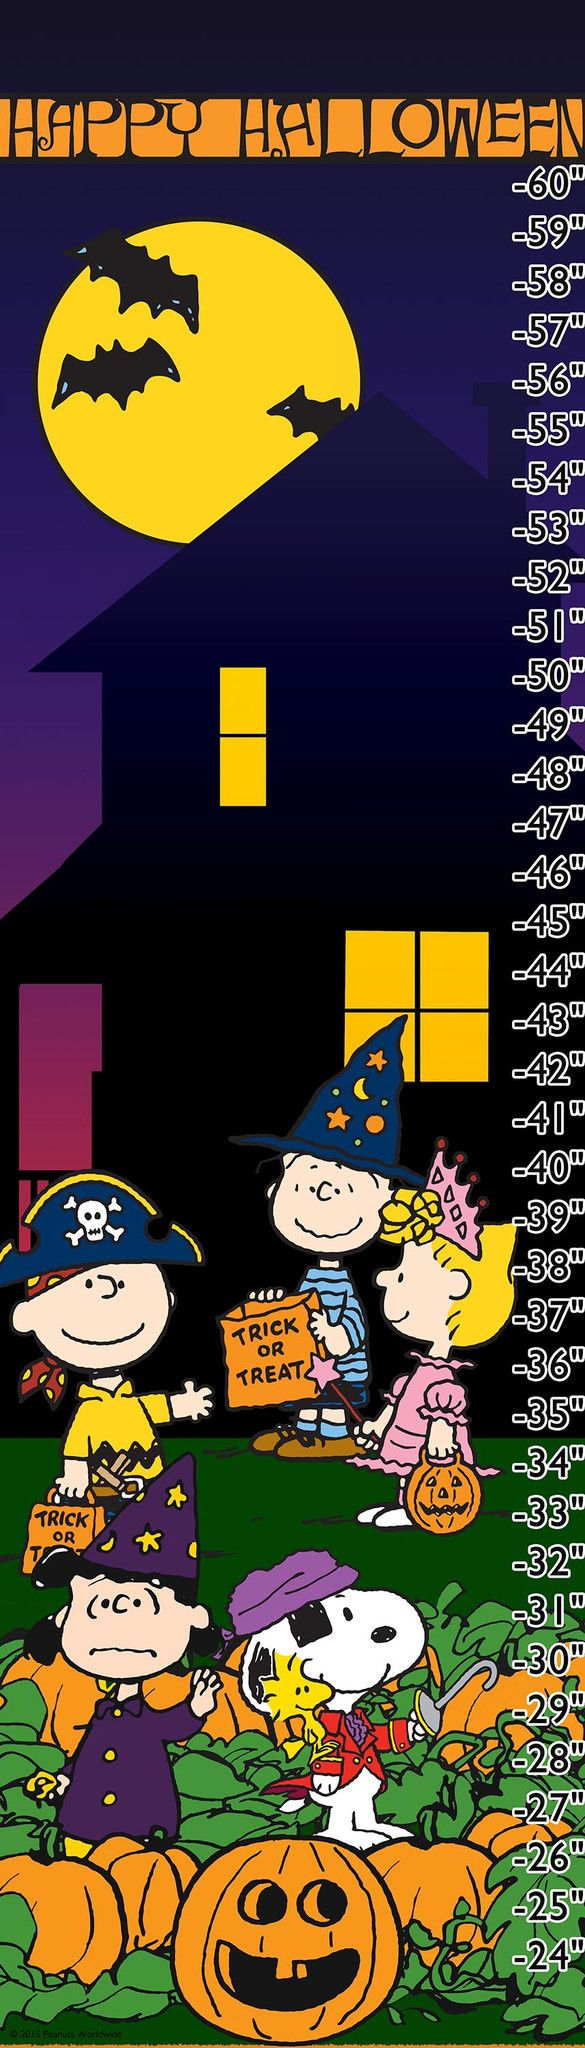 Description: Happy Halloween! The Peanuts gang trick-or-treats in this Peanuts…